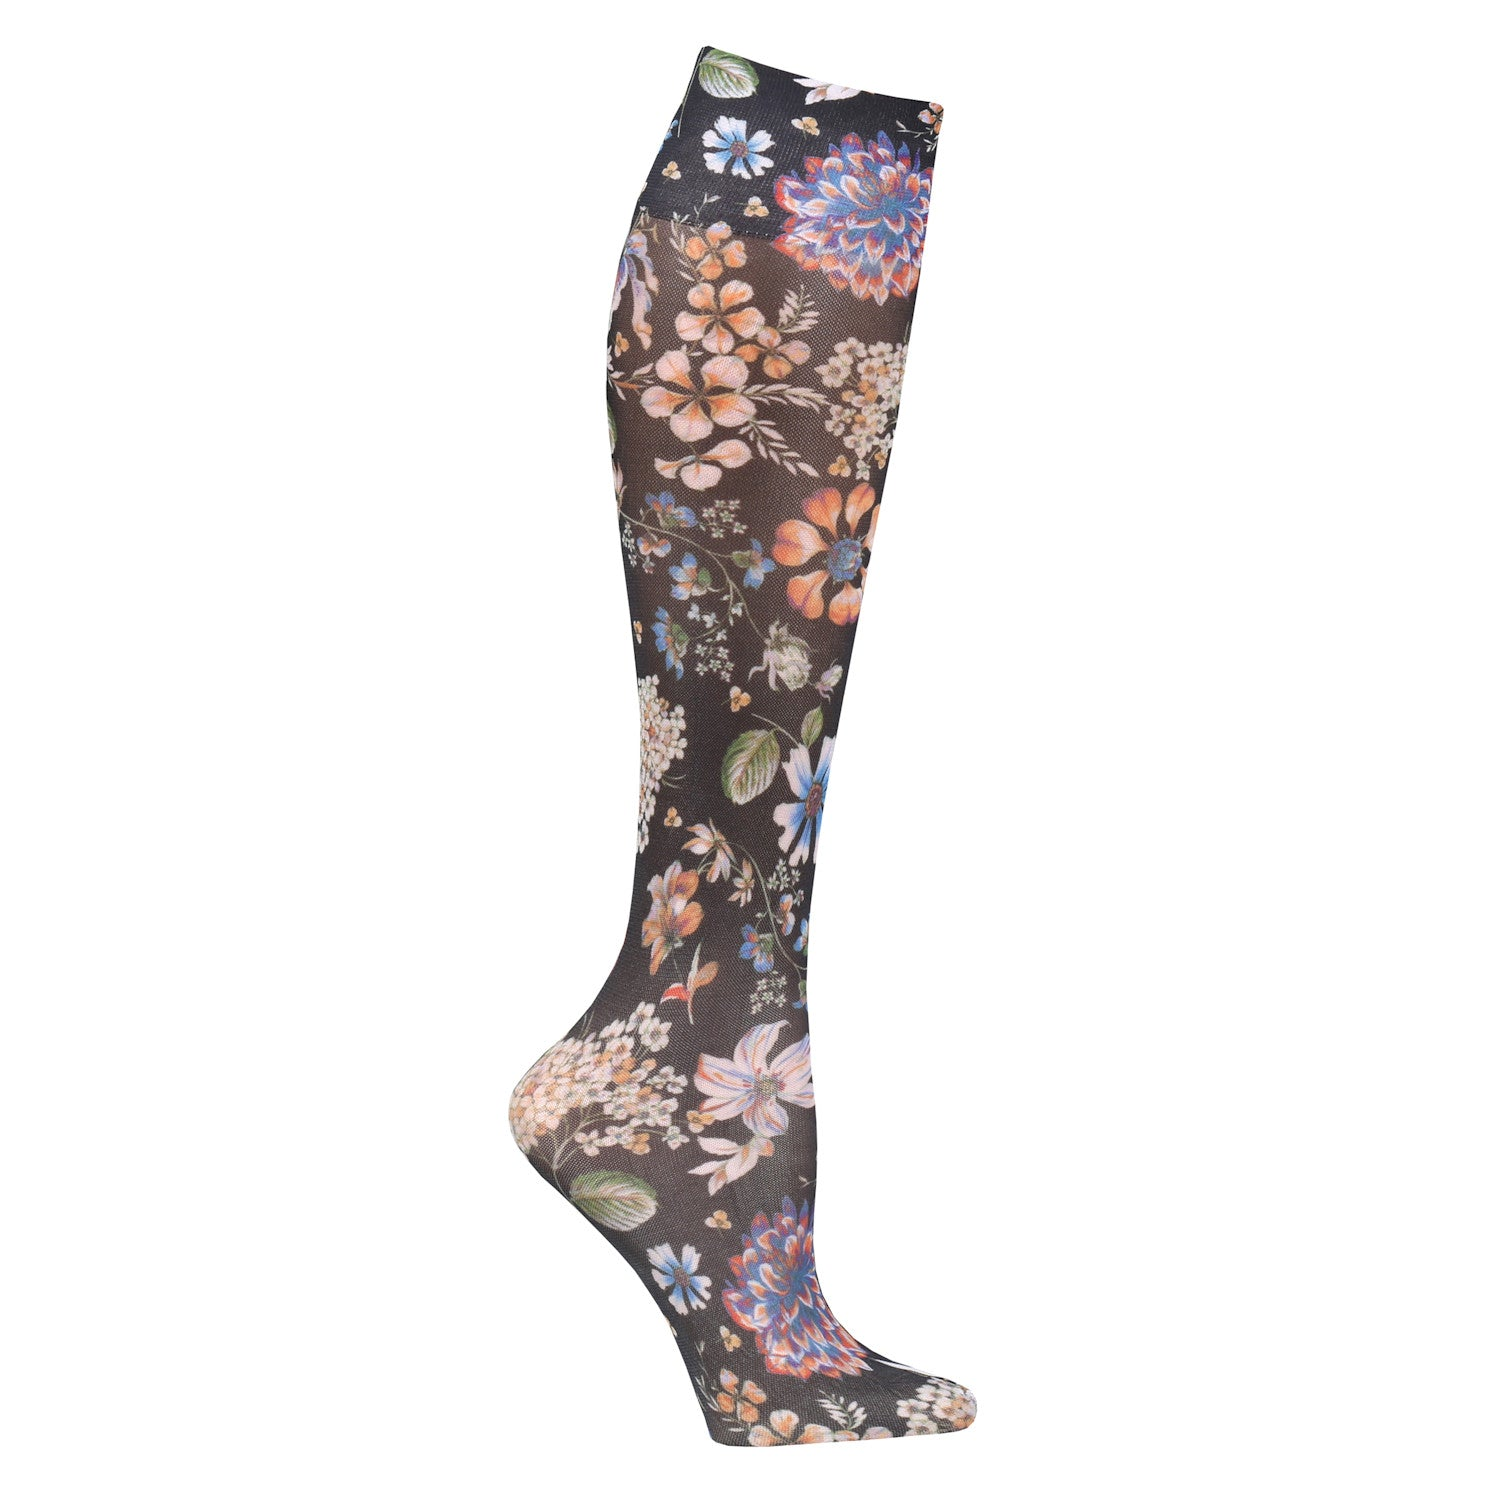 Celeste Black Praire Flowers Trouser Sock